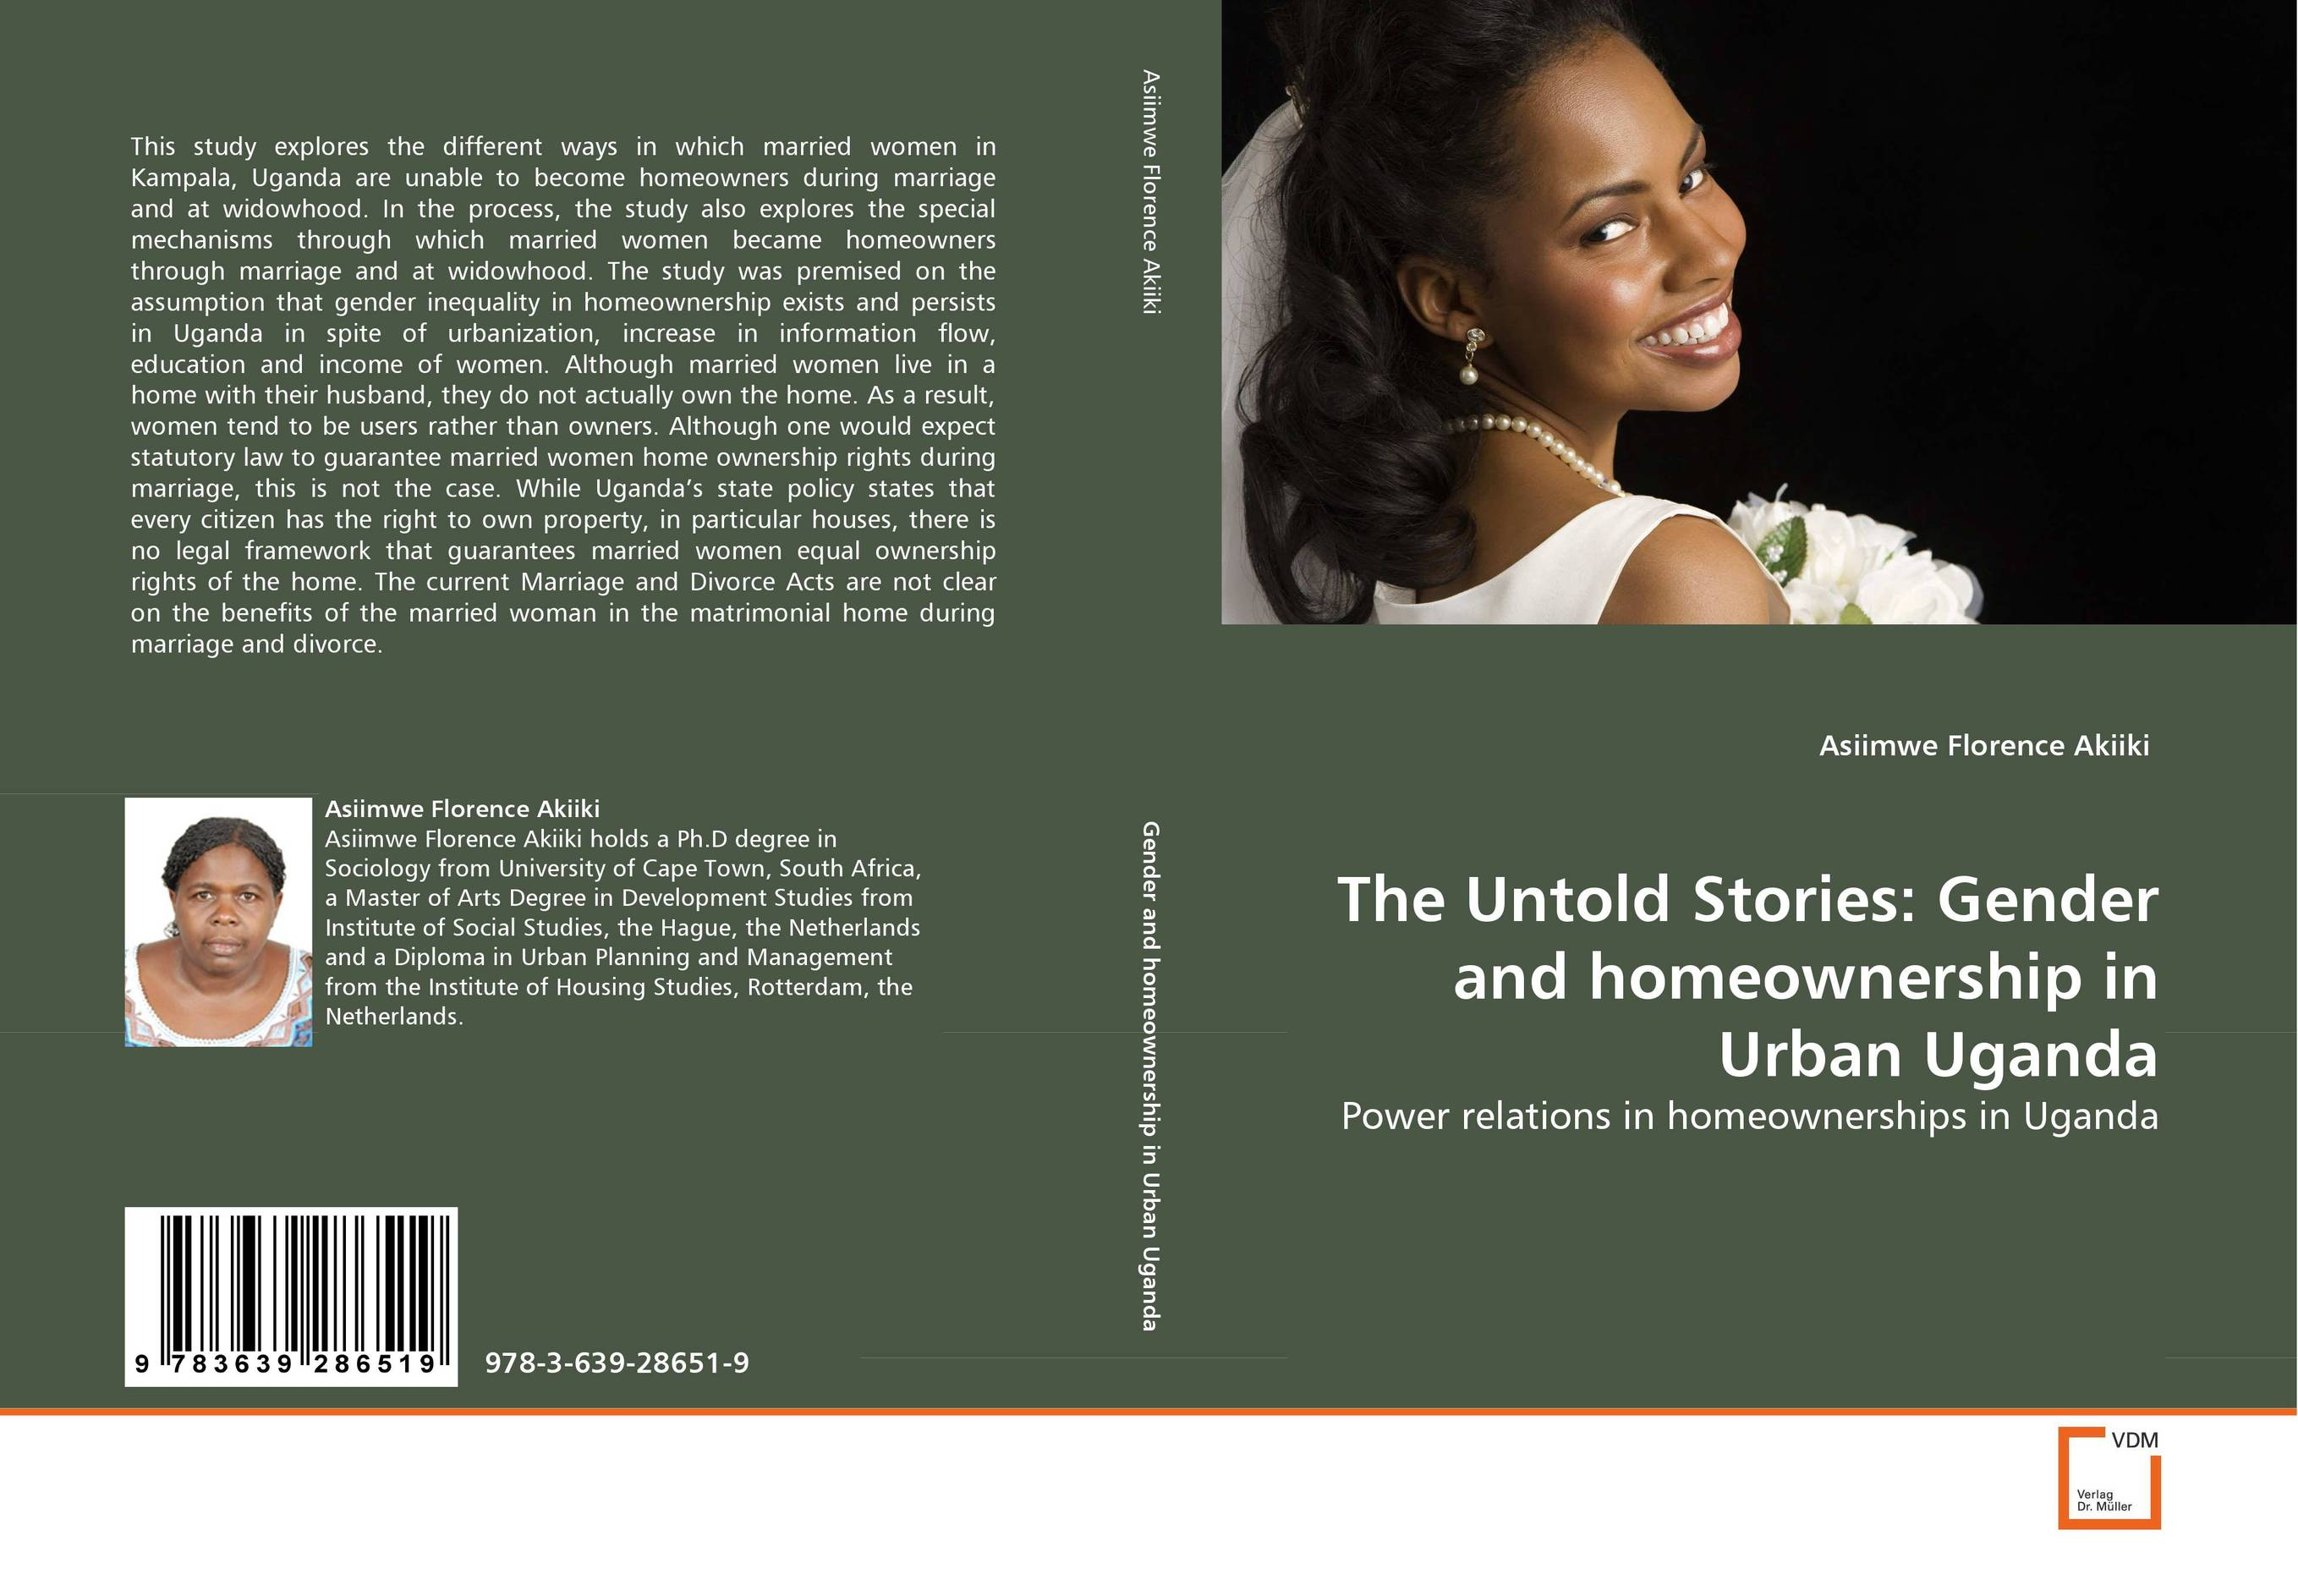 The Untold Stories: Gender and homeownership in Urban Uganda married to the game